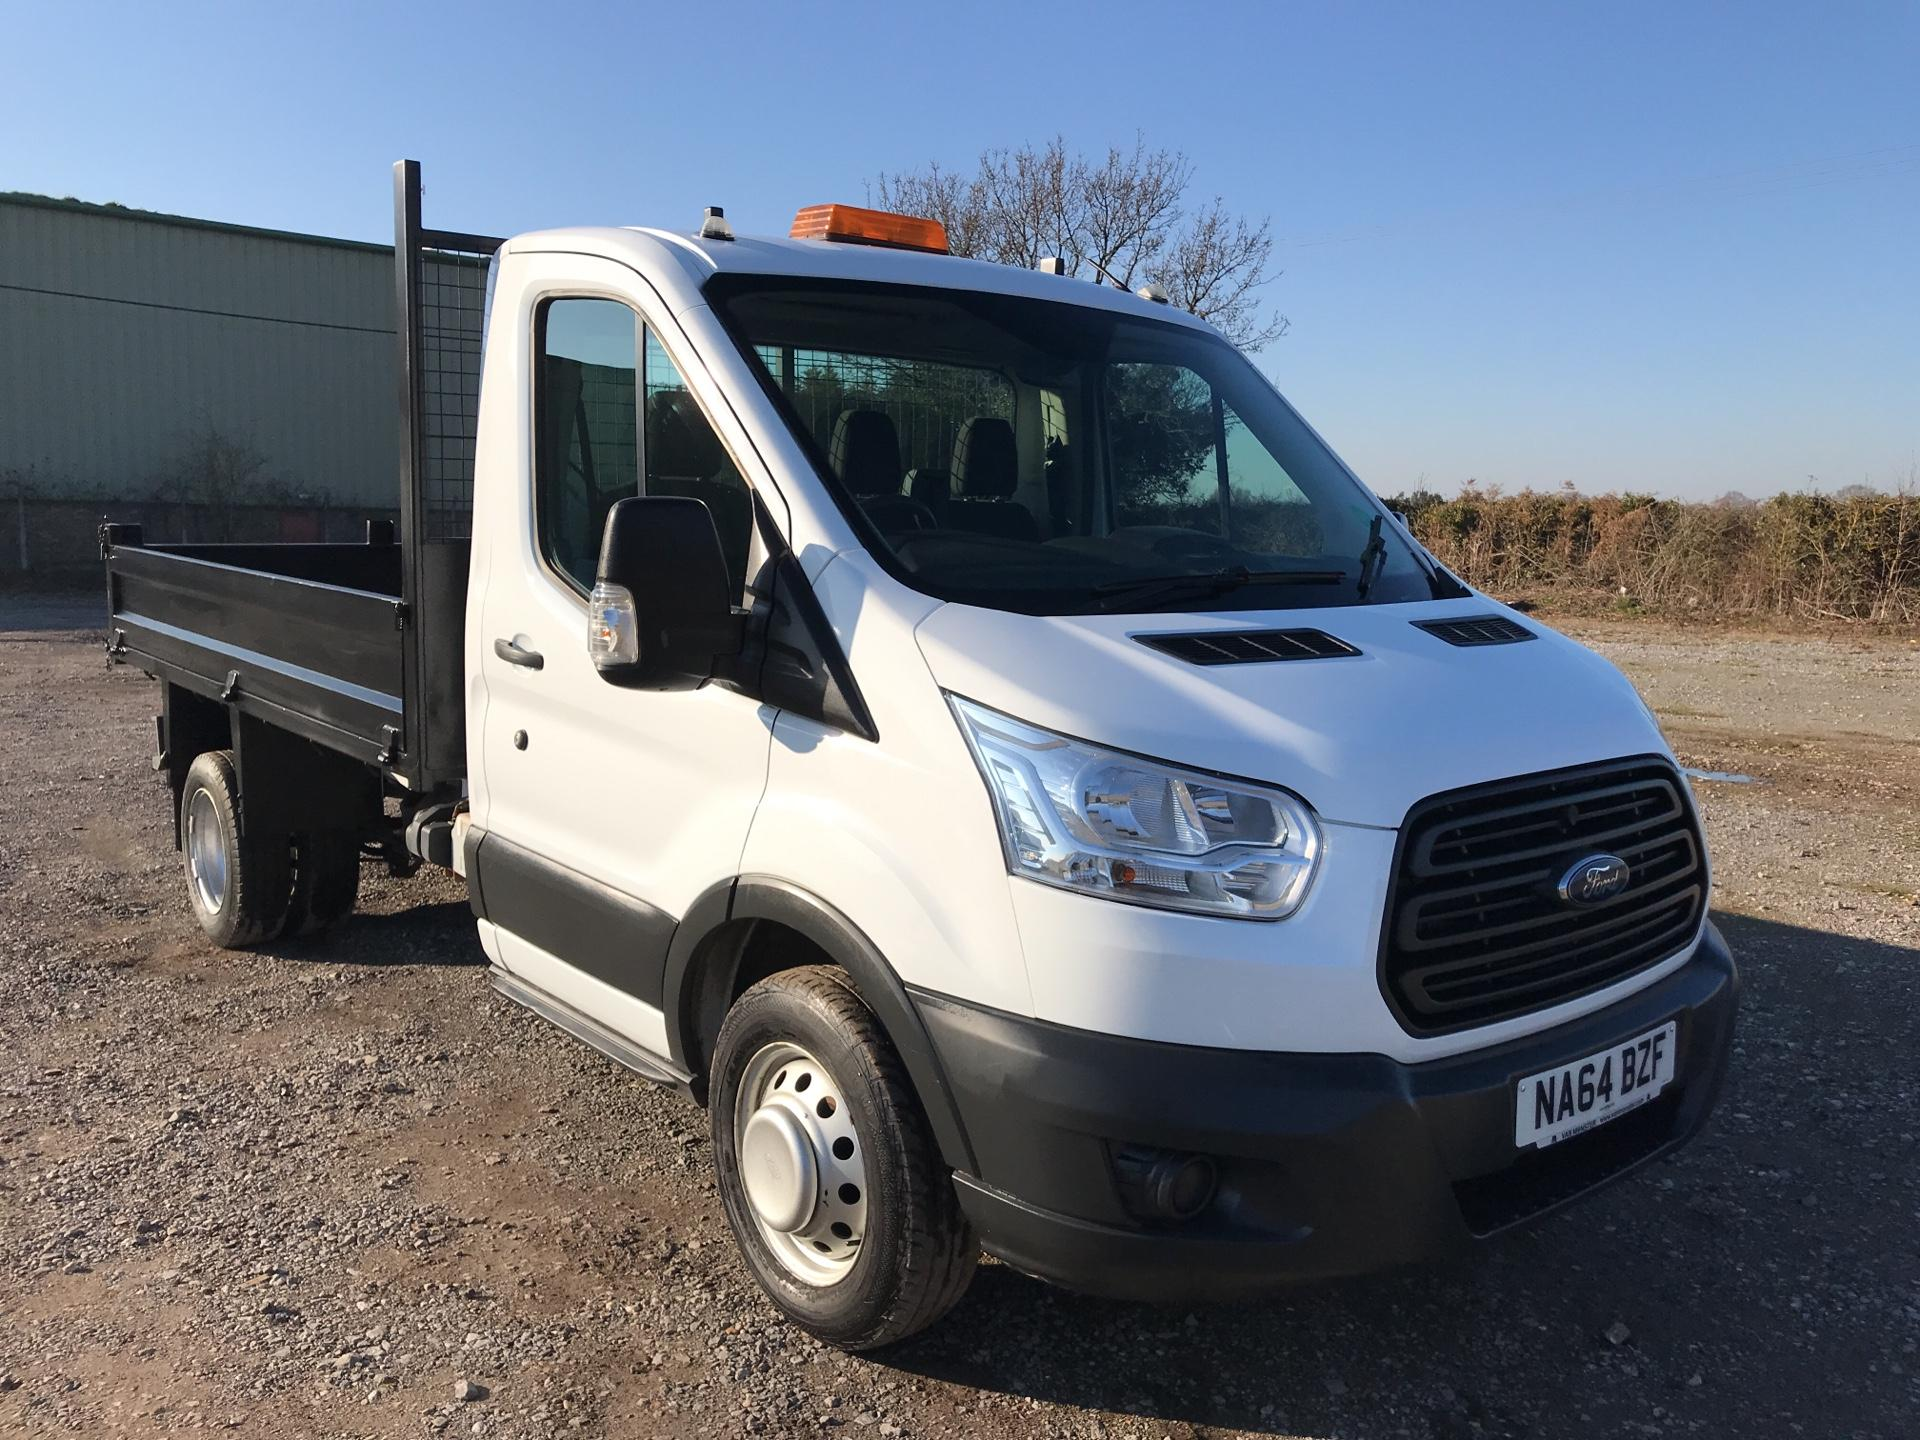 2014 Ford Transit 350 L2 SINGLE CAB TIPPER 125PS EURO 5 (NA64BZF)